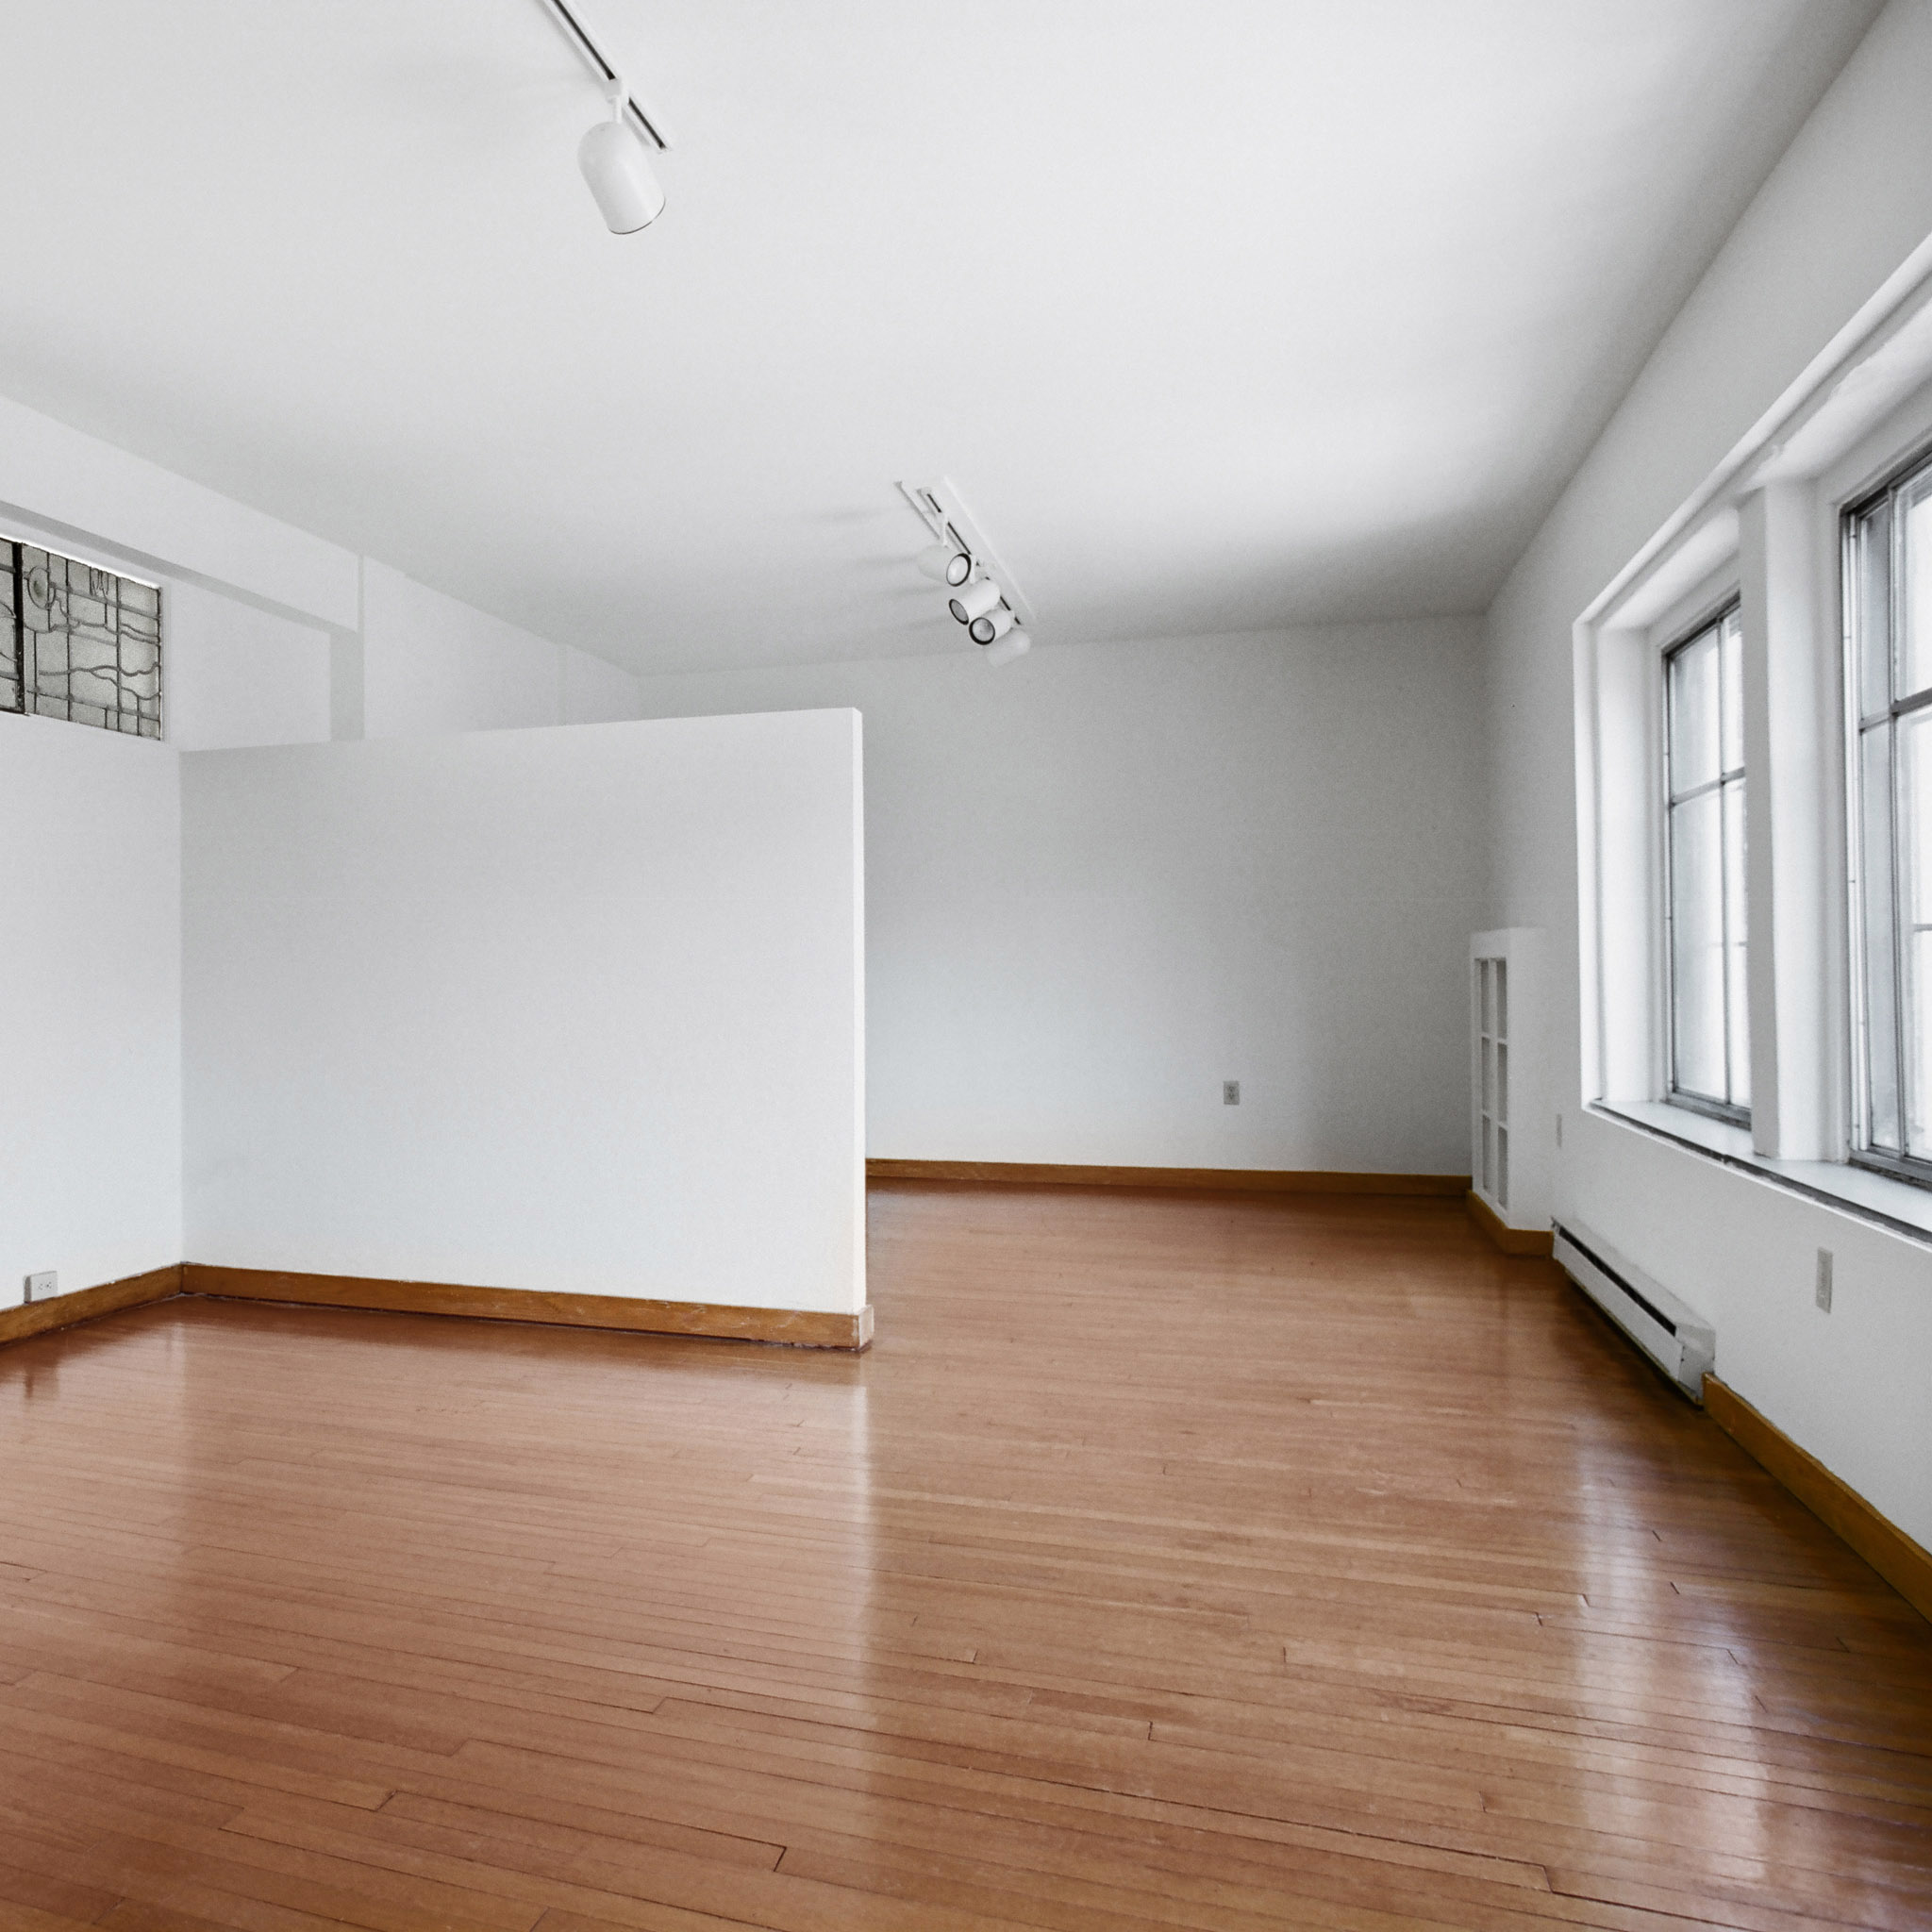 interior of 340 S. Highland Ave, Apt. 5A 4